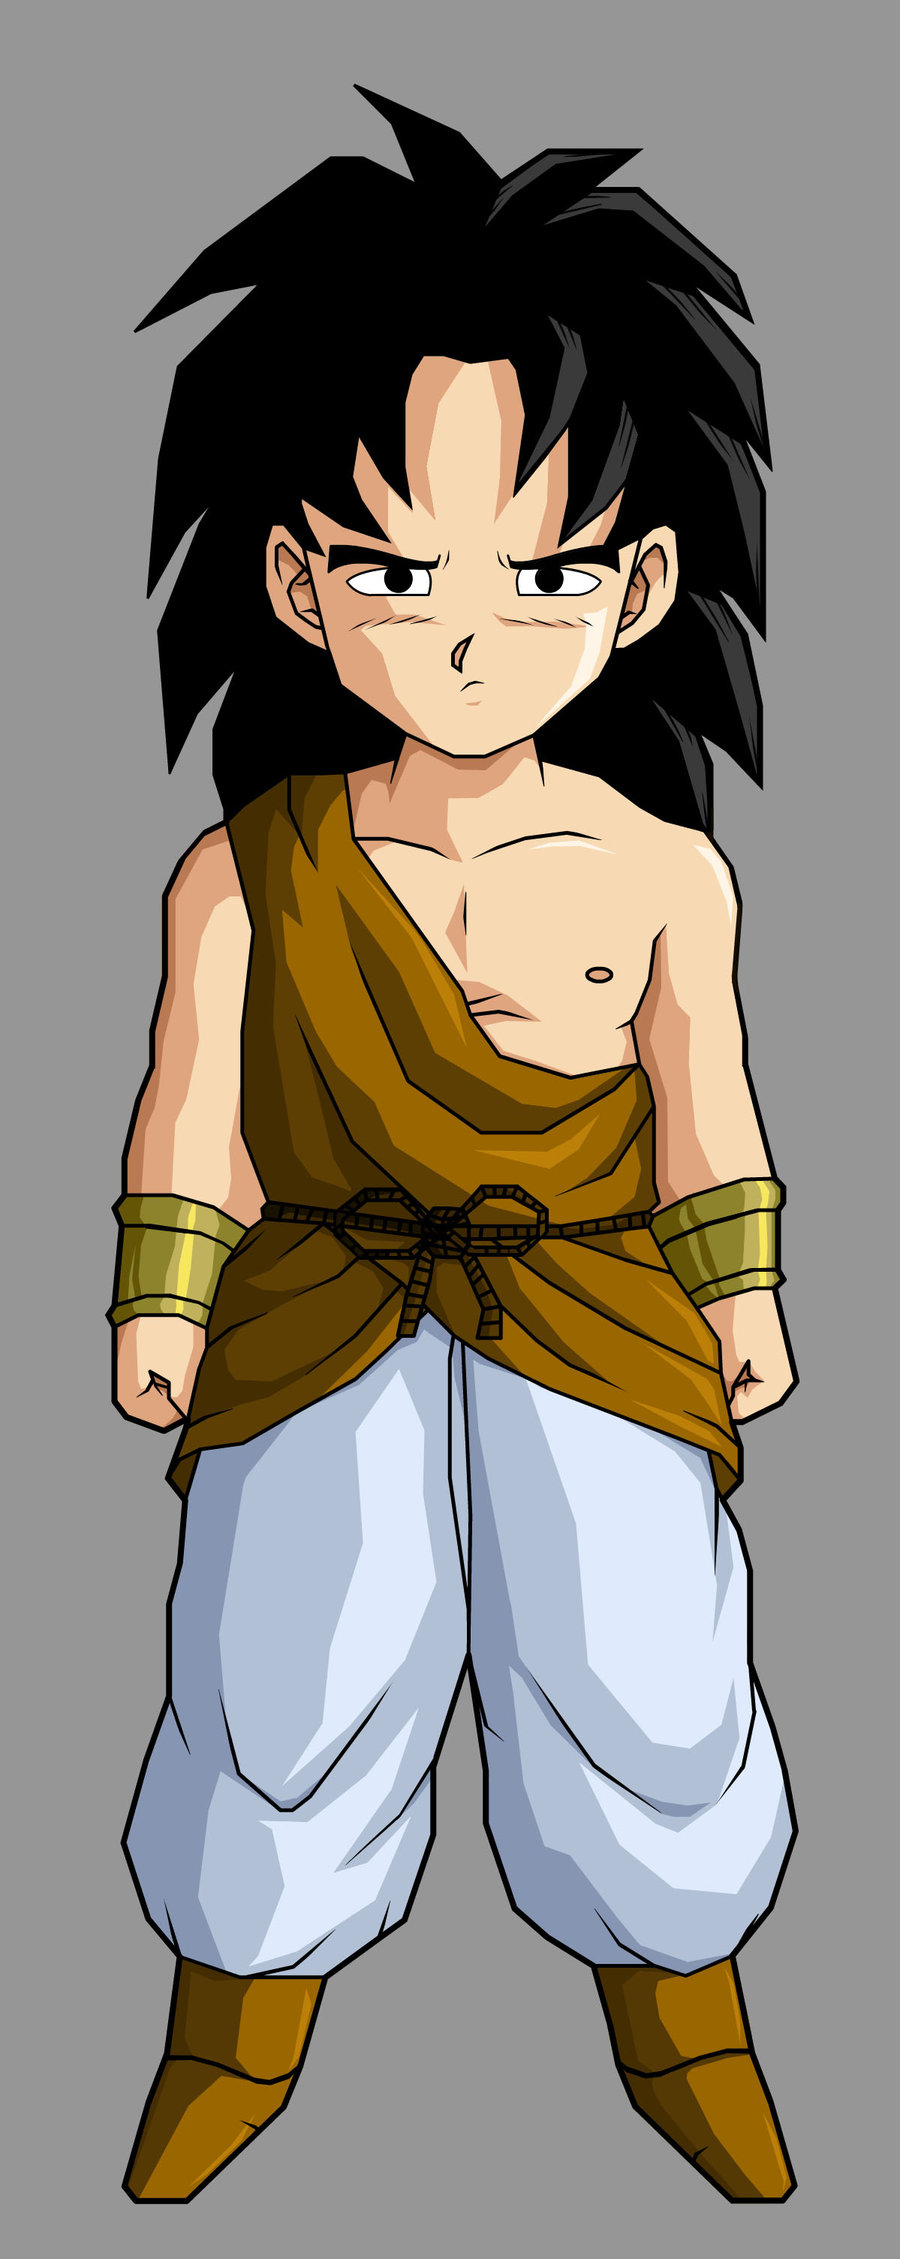 Dbz broly images kid broly hd wallpaper and background - Dragon ball z baby broly ...